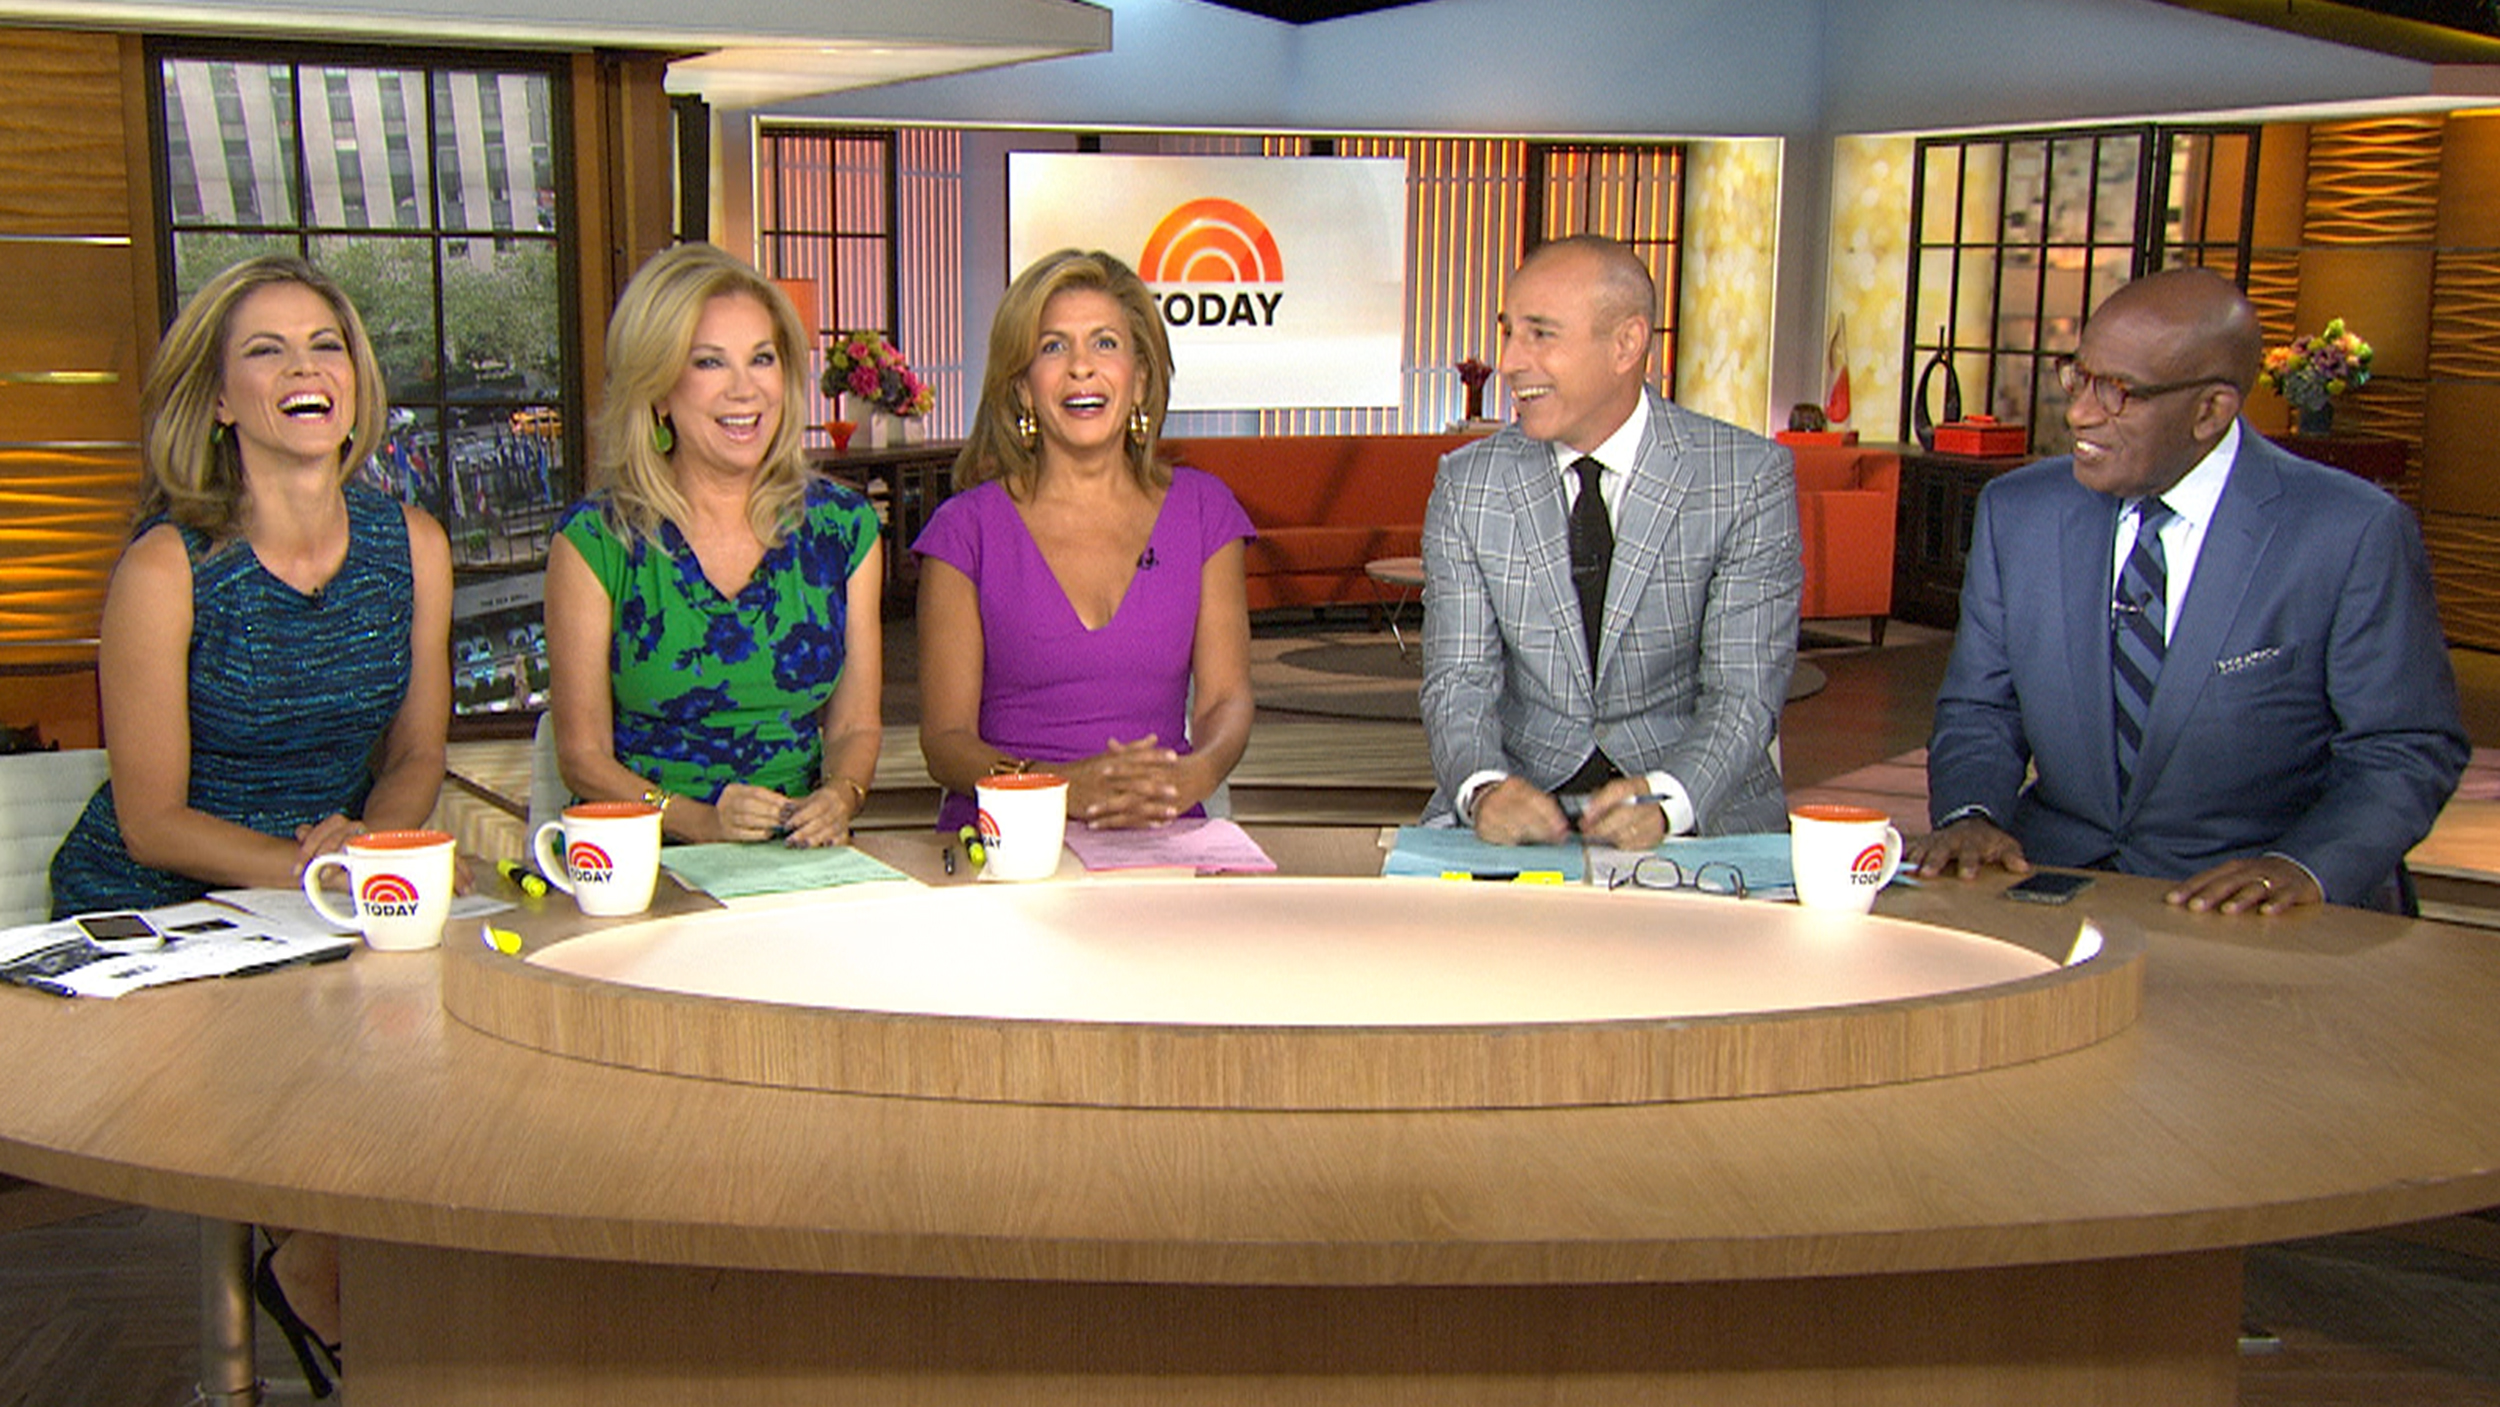 Toady 1 Kathie Lee and ...